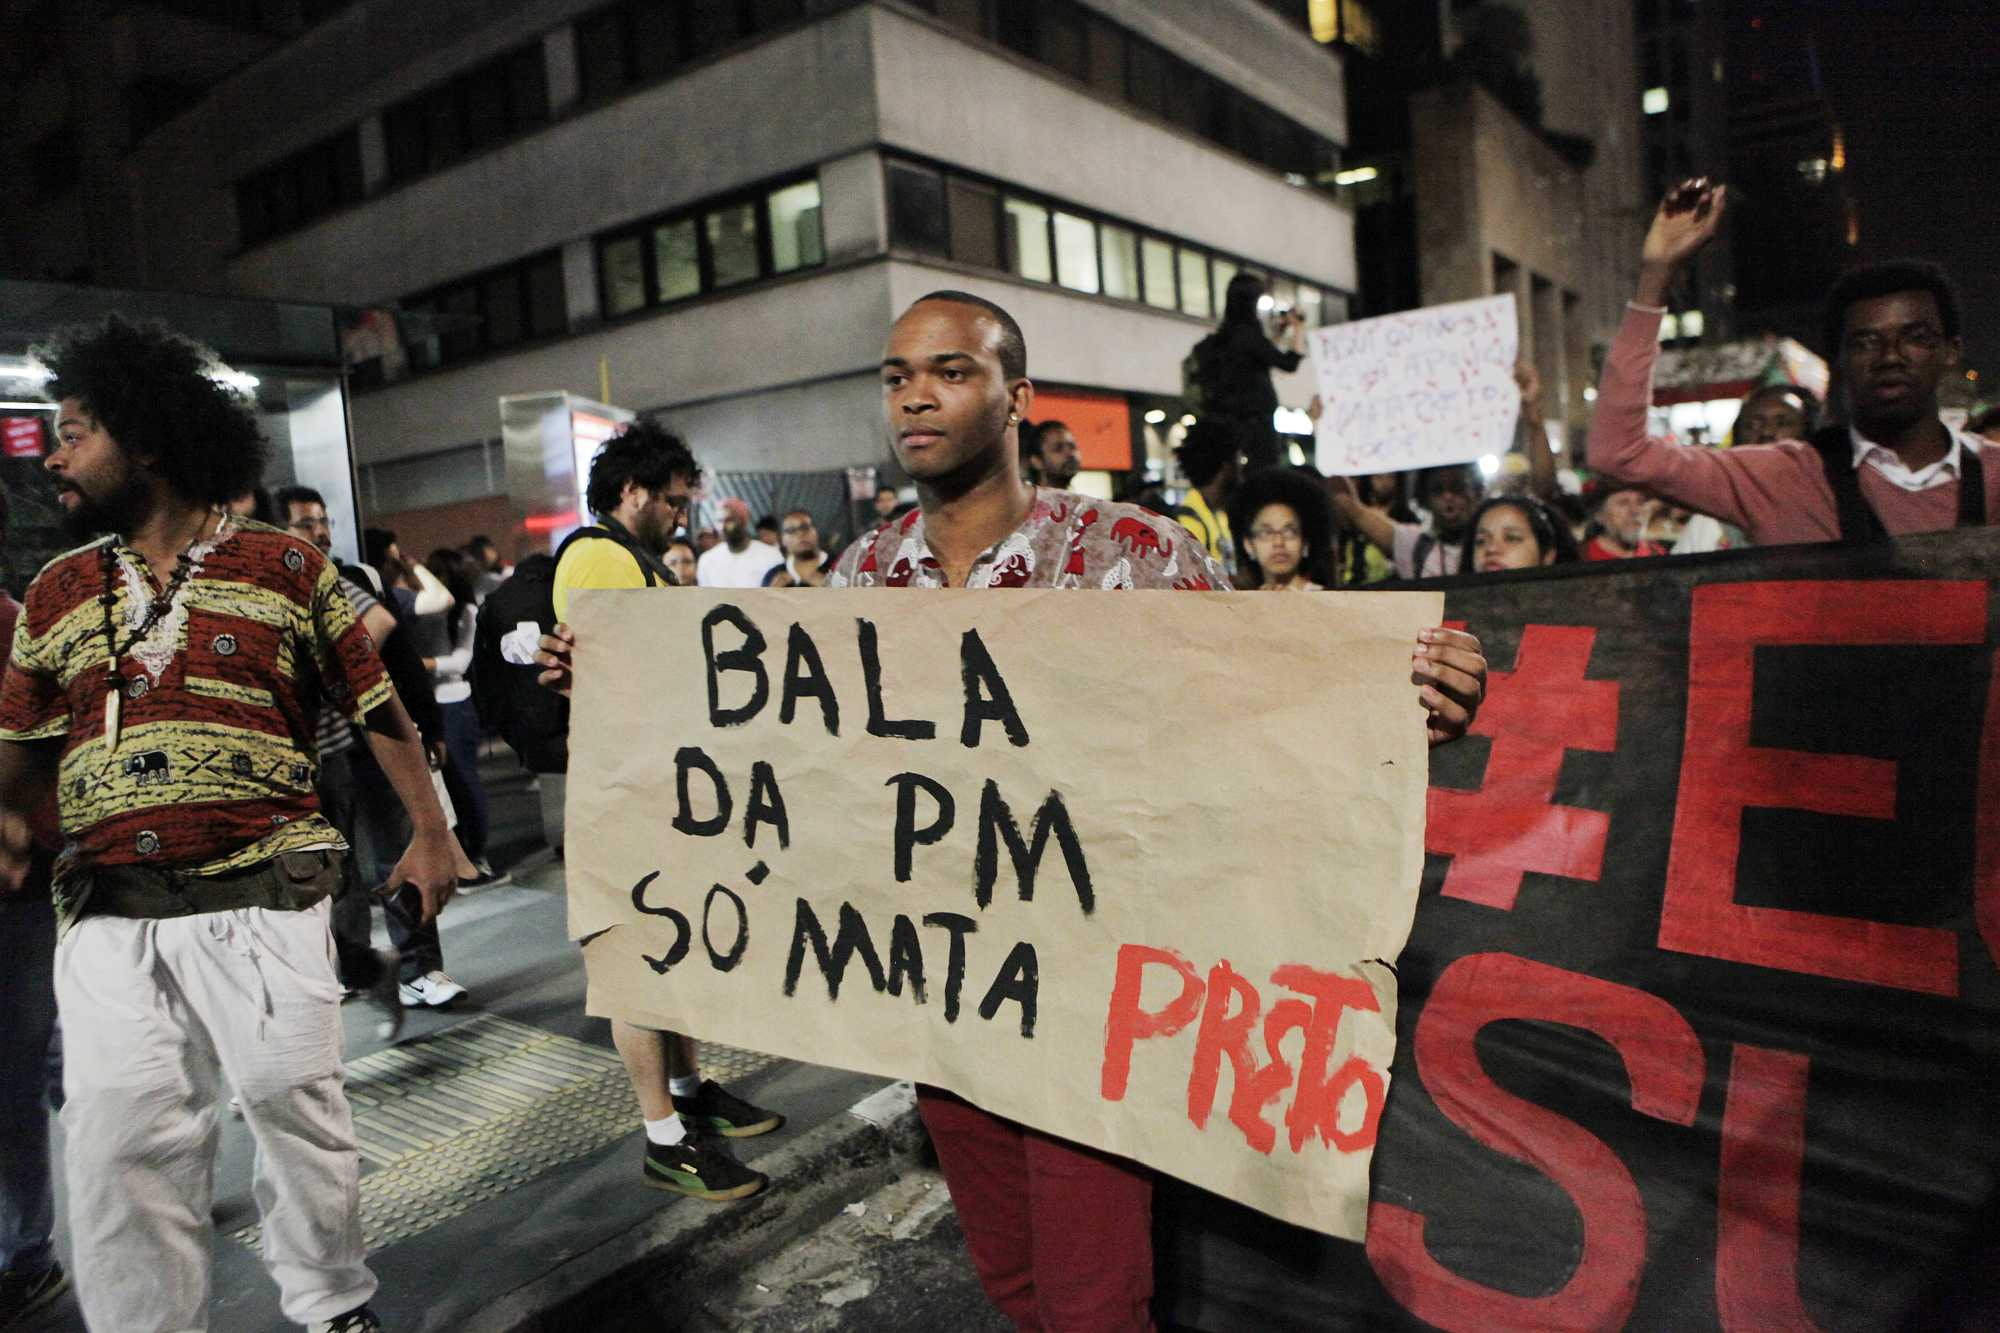 March pro black right. The police bullets only kill blacks - Oswaldo Corneti/Fotos Públicas